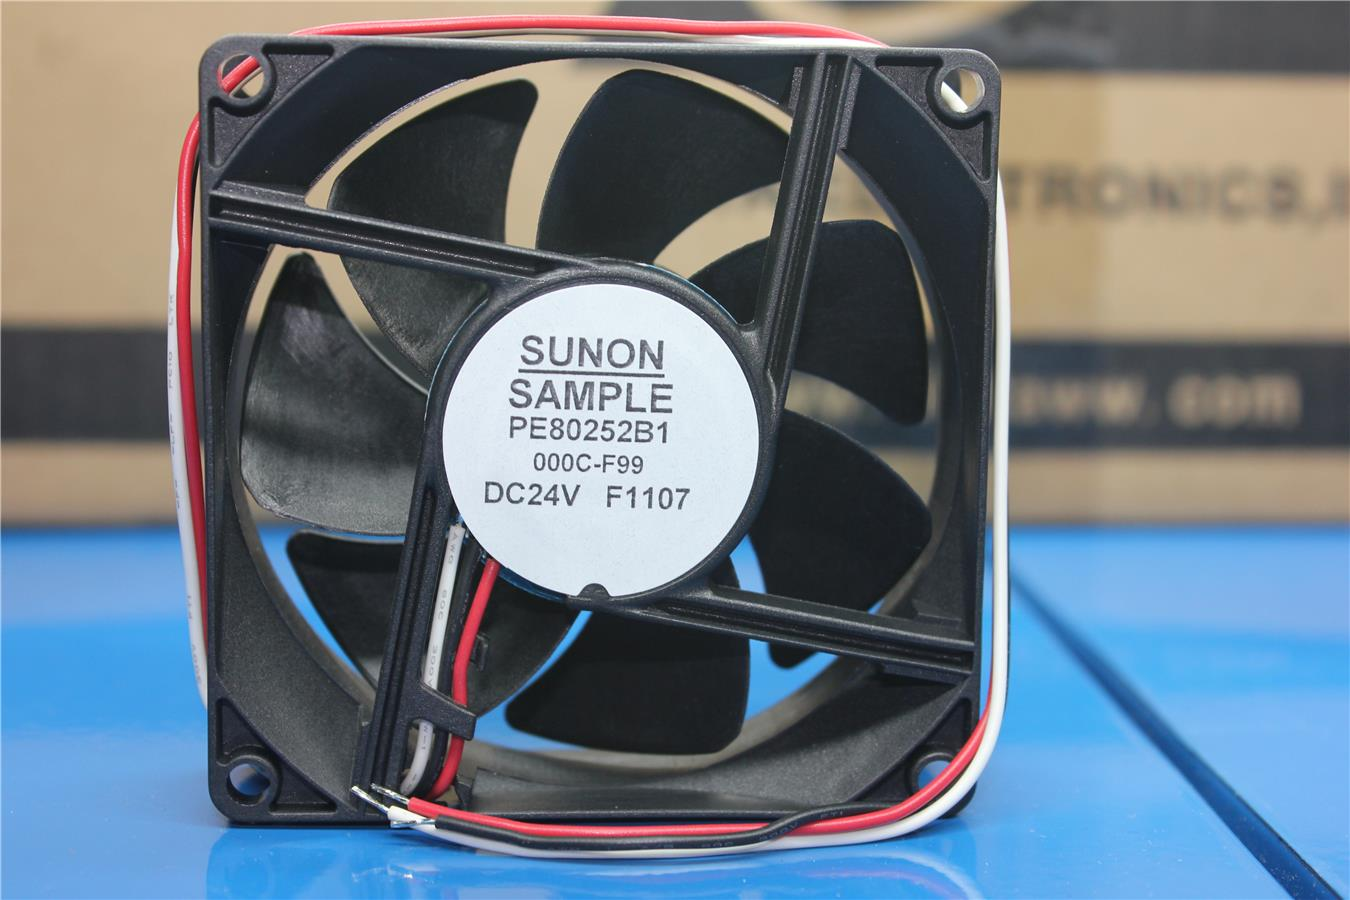 Sunon PE80252B1-000C-F99 8025 24V 4.8W inverter fan